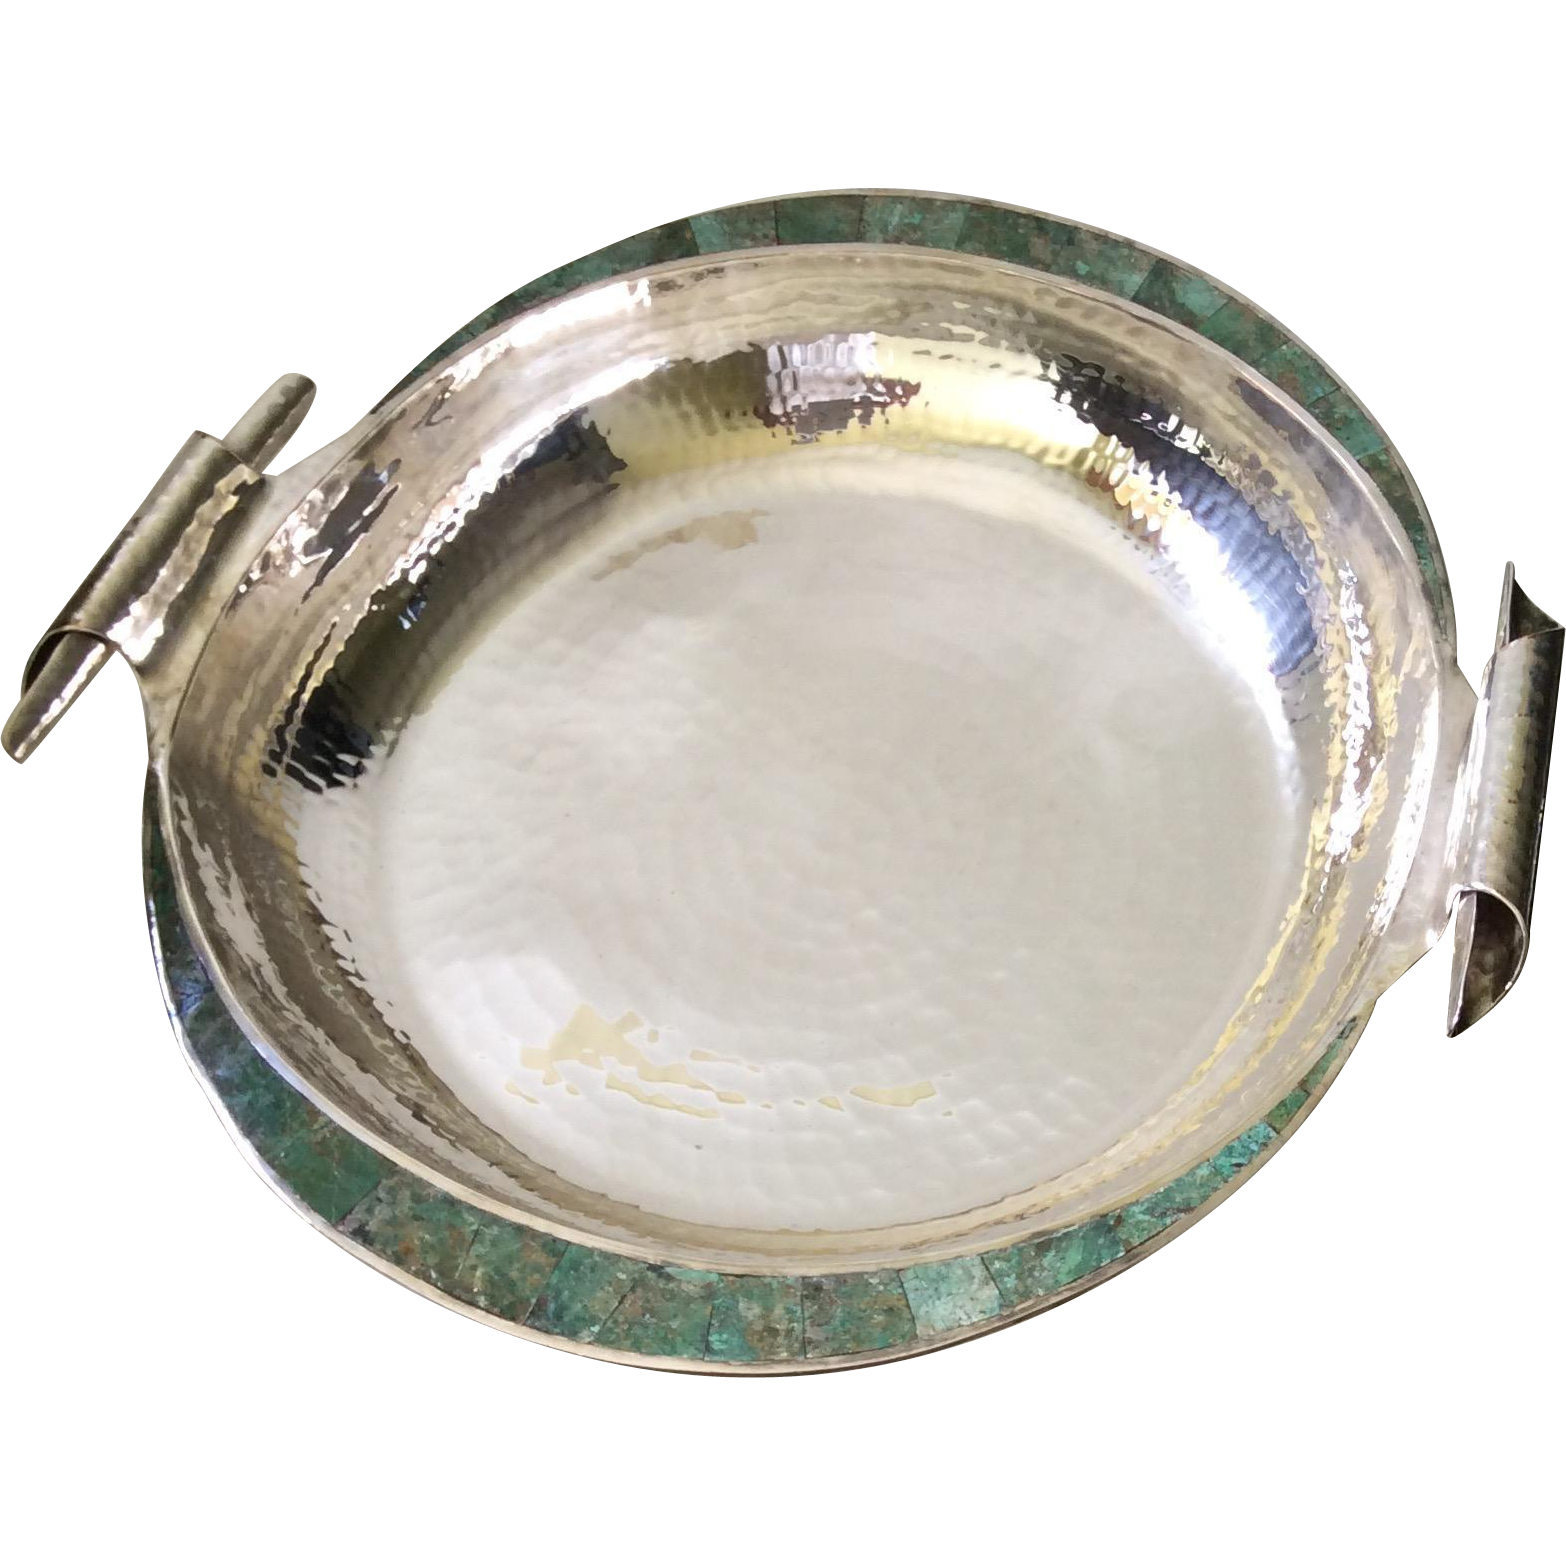 Emilia Castillo Taxco Centerpiece Bowl with Inlaid Turquoise and Scrolled Handles